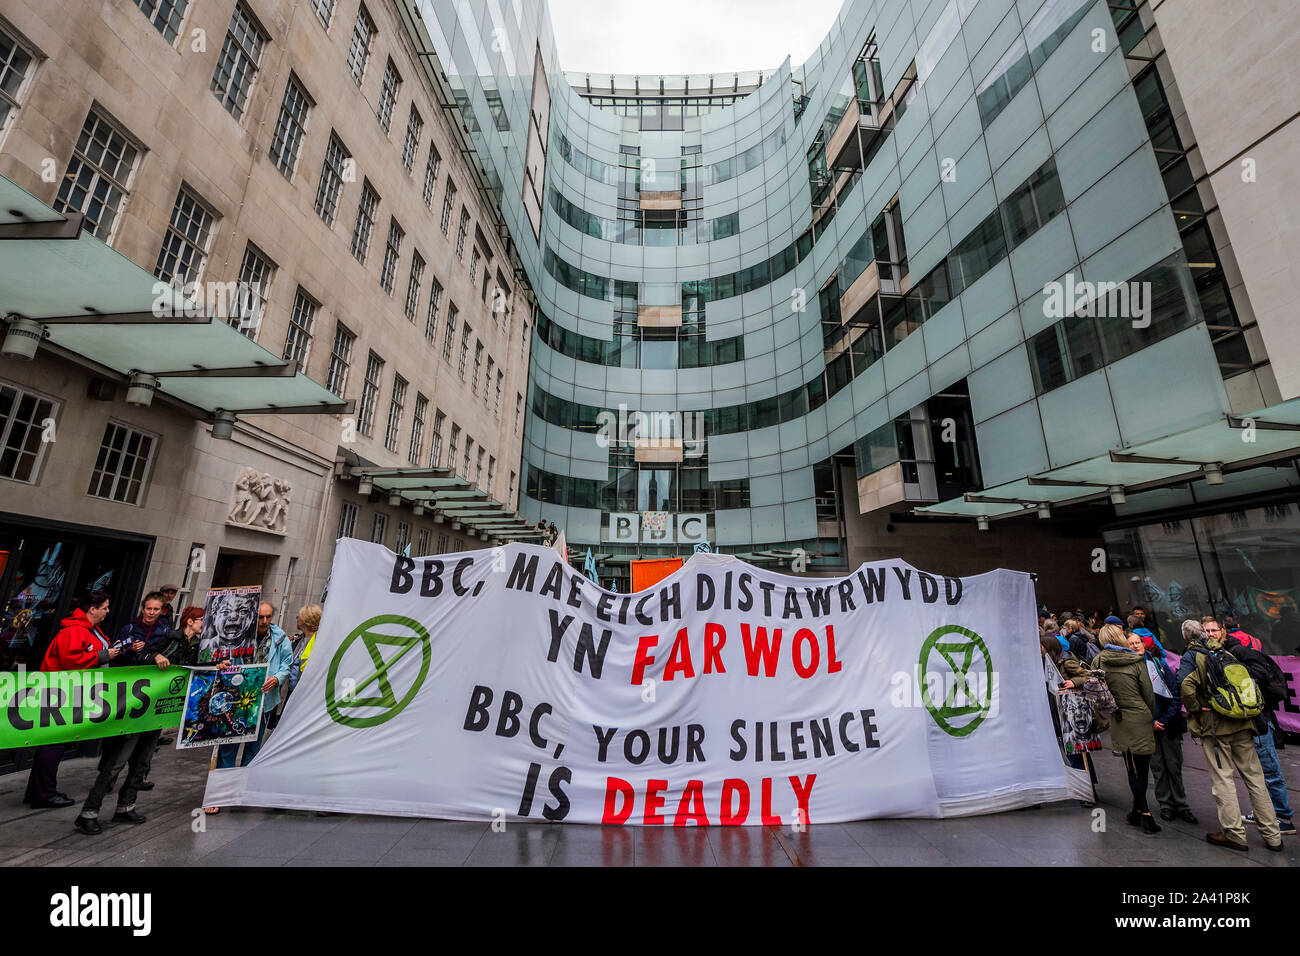 London, UK. 11th Oct, 2019. XR Wales blockade the BBC Broadcasting House in Portland Place because they believe they have been slow to speak up on climate change - The fifth day of the Extinction Rebellion October action which has blocked roads in central London. They are again highlighting the climate emergency, with time running out to save the planet from a climate disaster. This is part of the ongoing ER and other protests to demand action by the UK Government on the 'climate crisis'. The action is part of an international co-ordinated protest. Credit: Guy Bell/Alamy Live News Stock Photo